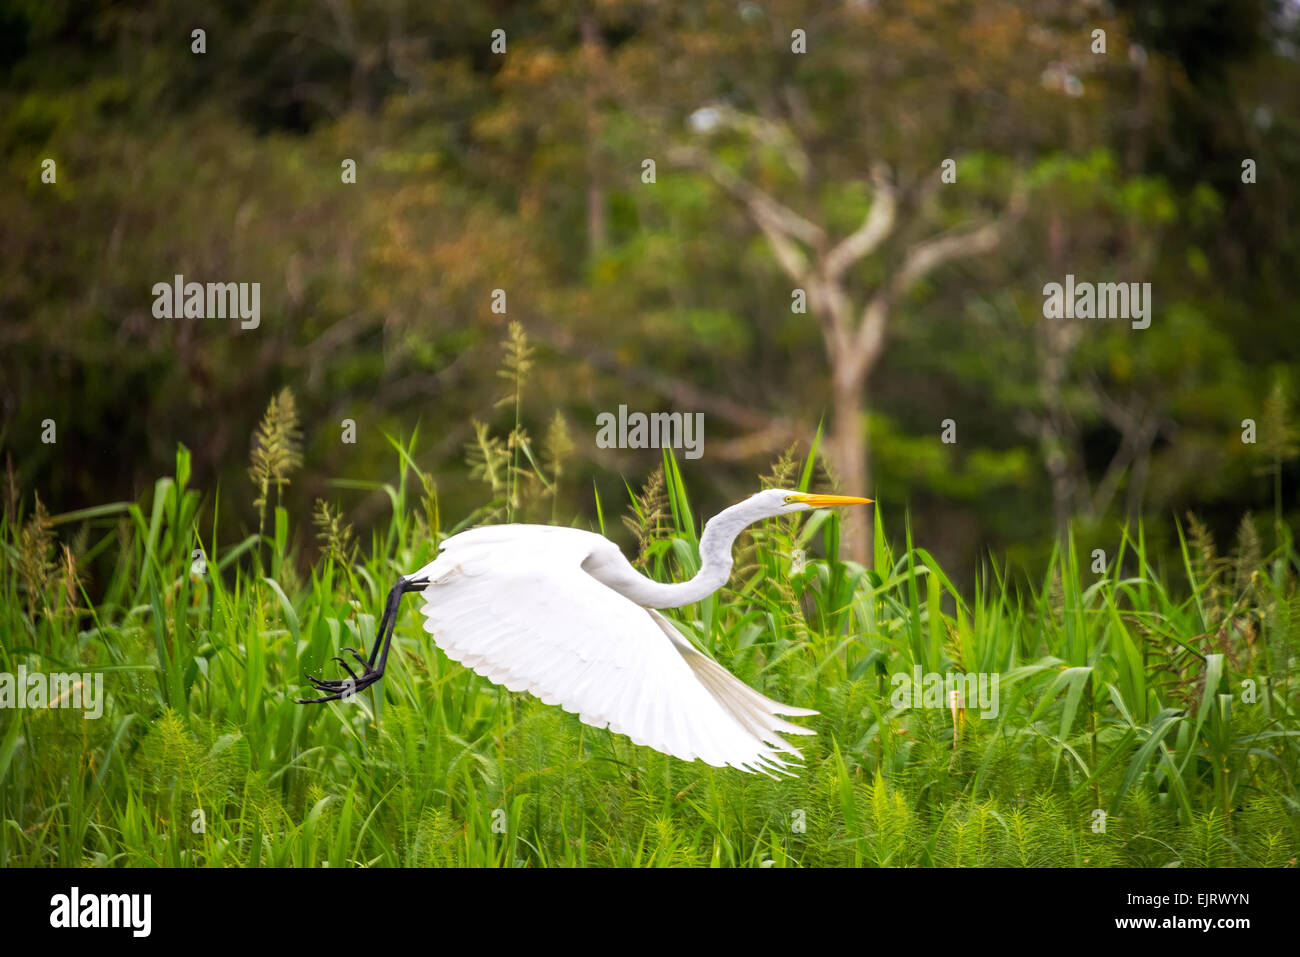 View of a great white heron taking off in the Amazon rainforest in Peru - Stock Image